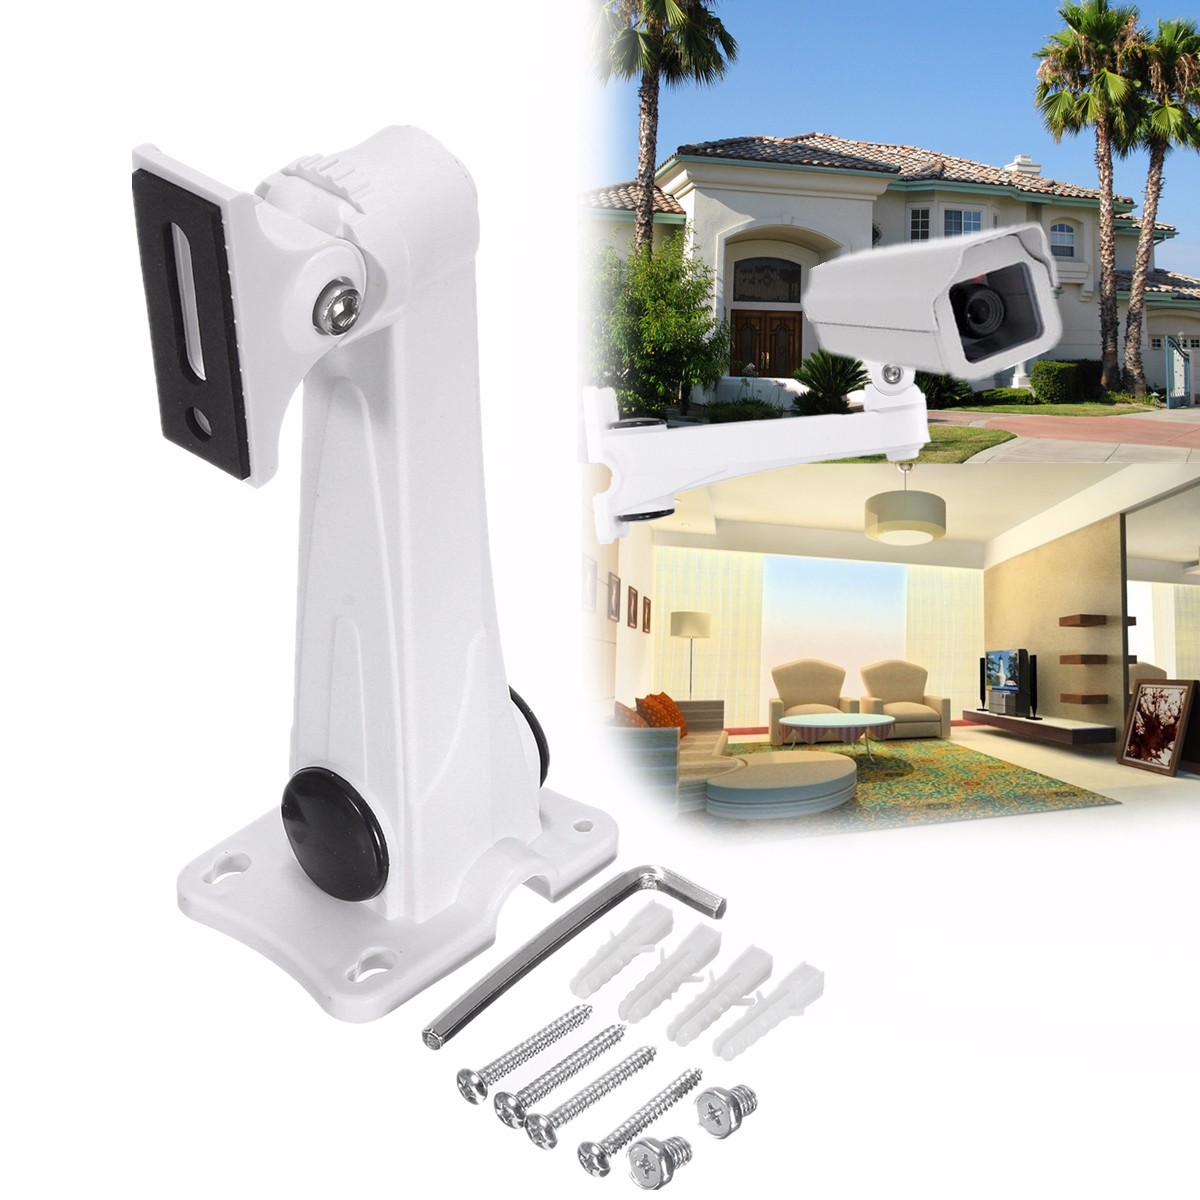 ZSX-608S Wall Mount Bracket Indoor Outdoor Home Surveillance For CCTV Security Camera